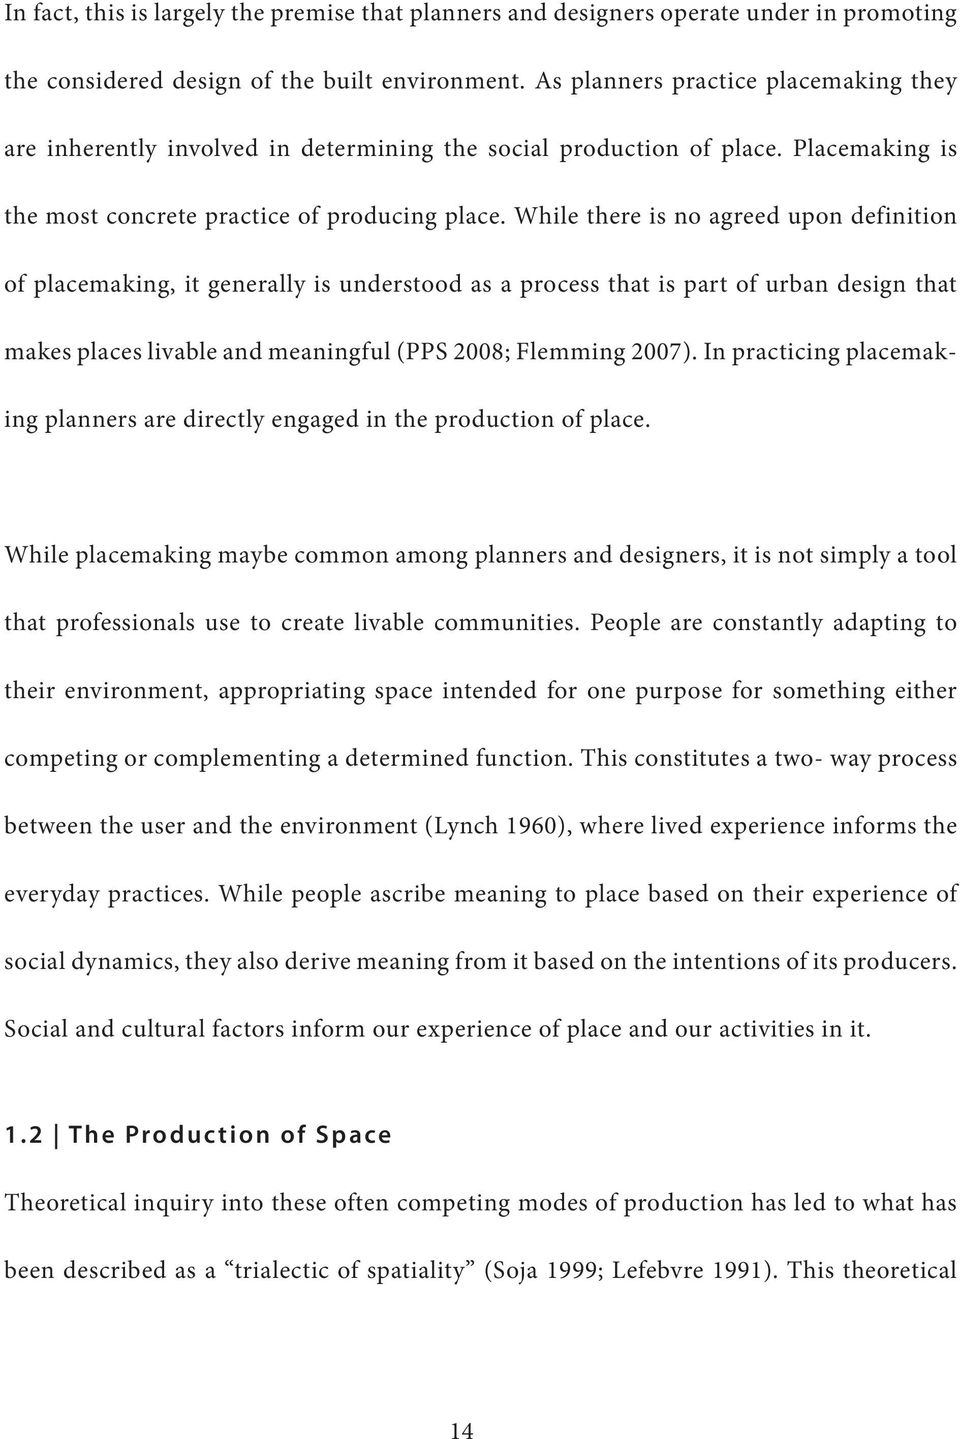 While there is no agreed upon definition of placemaking, it generally is understood as a process that is part of urban design that makes places livable and meaningful (PPS 2008; Flemming 2007).